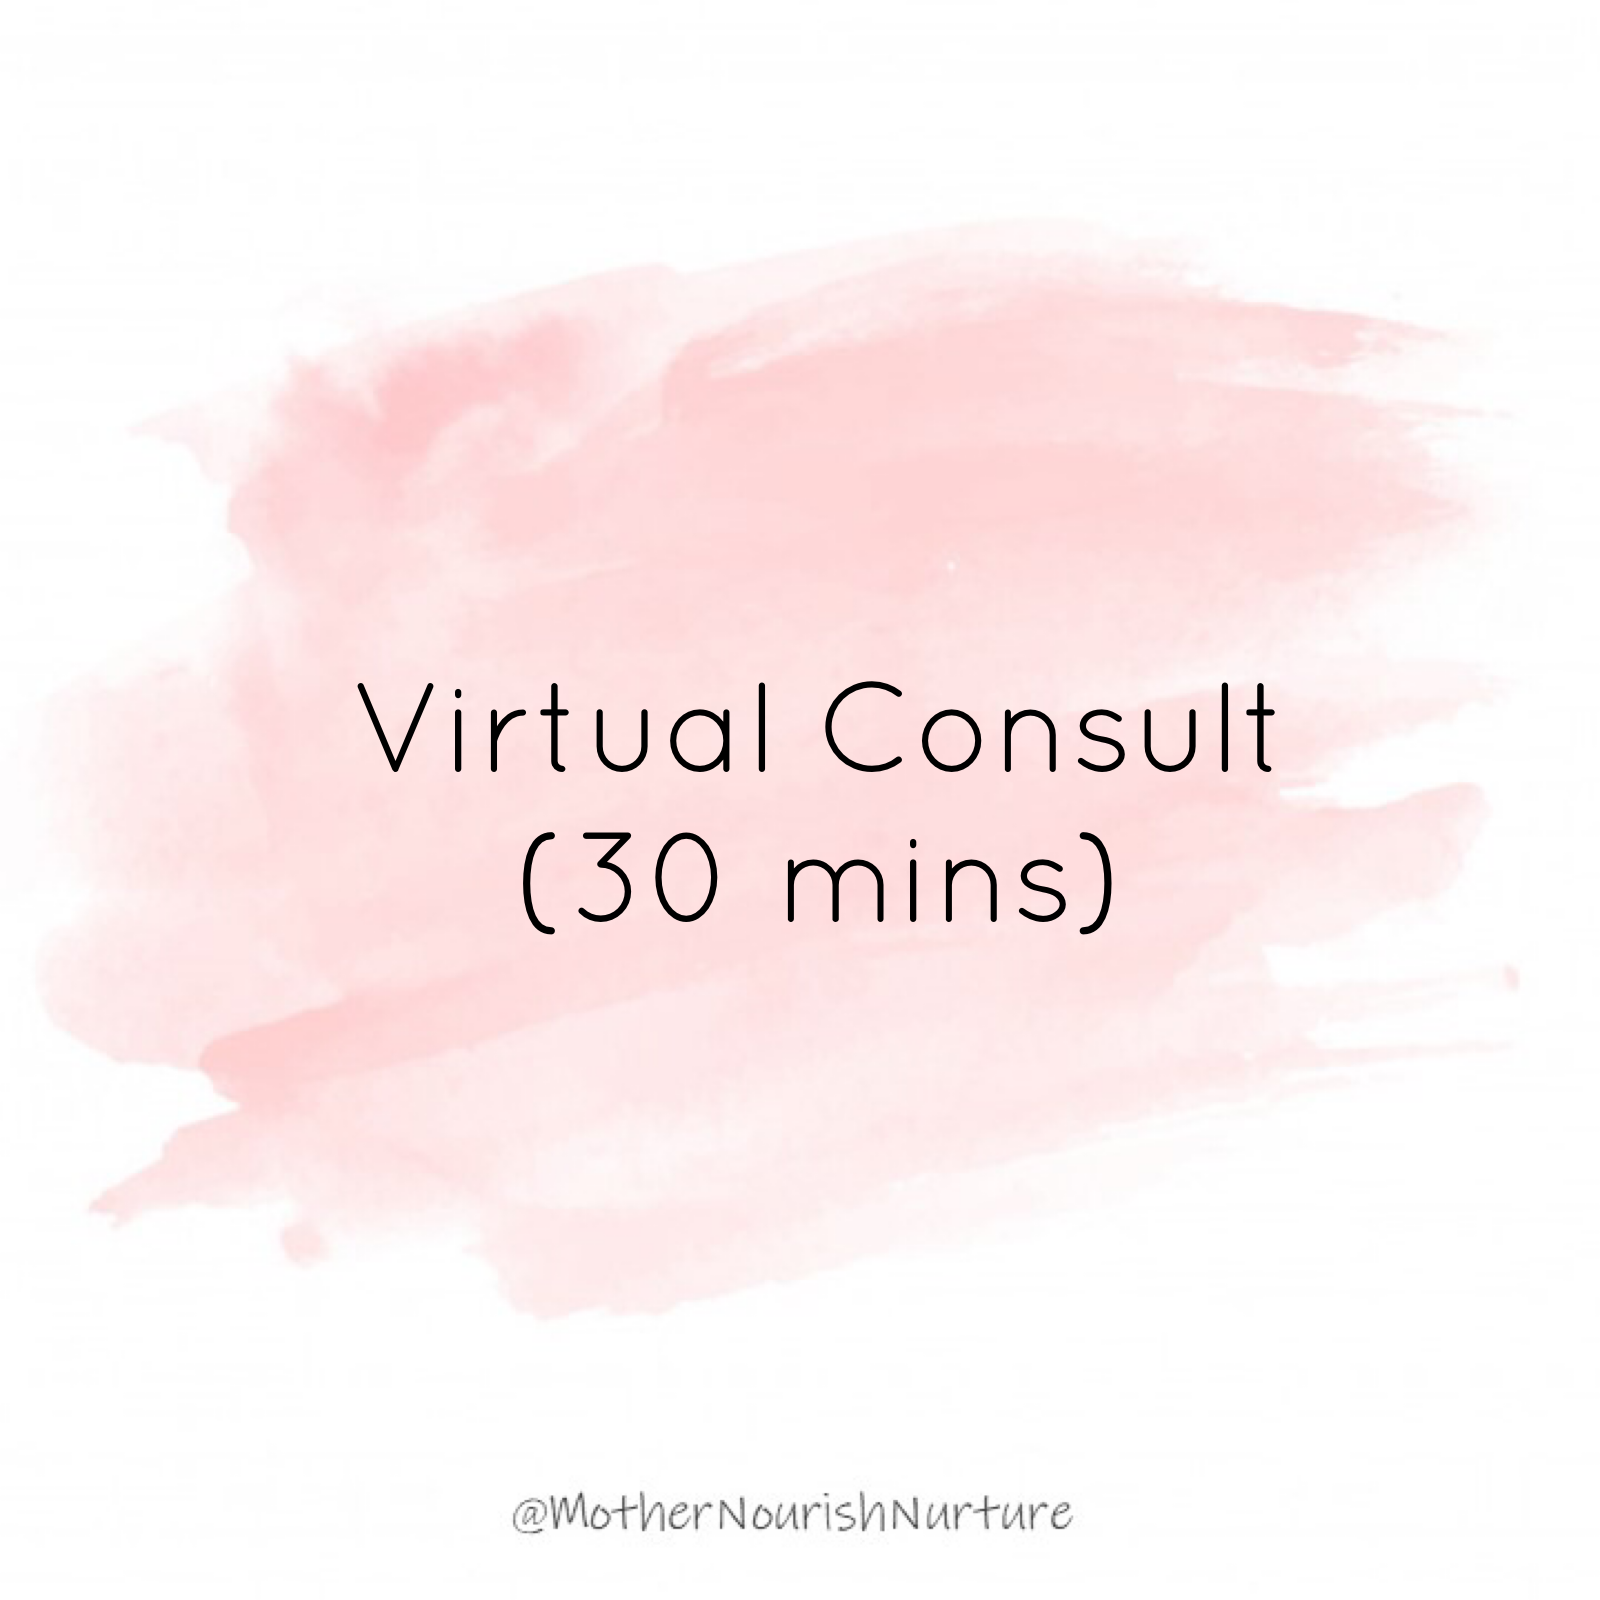 Virtual Consult (30 mins)